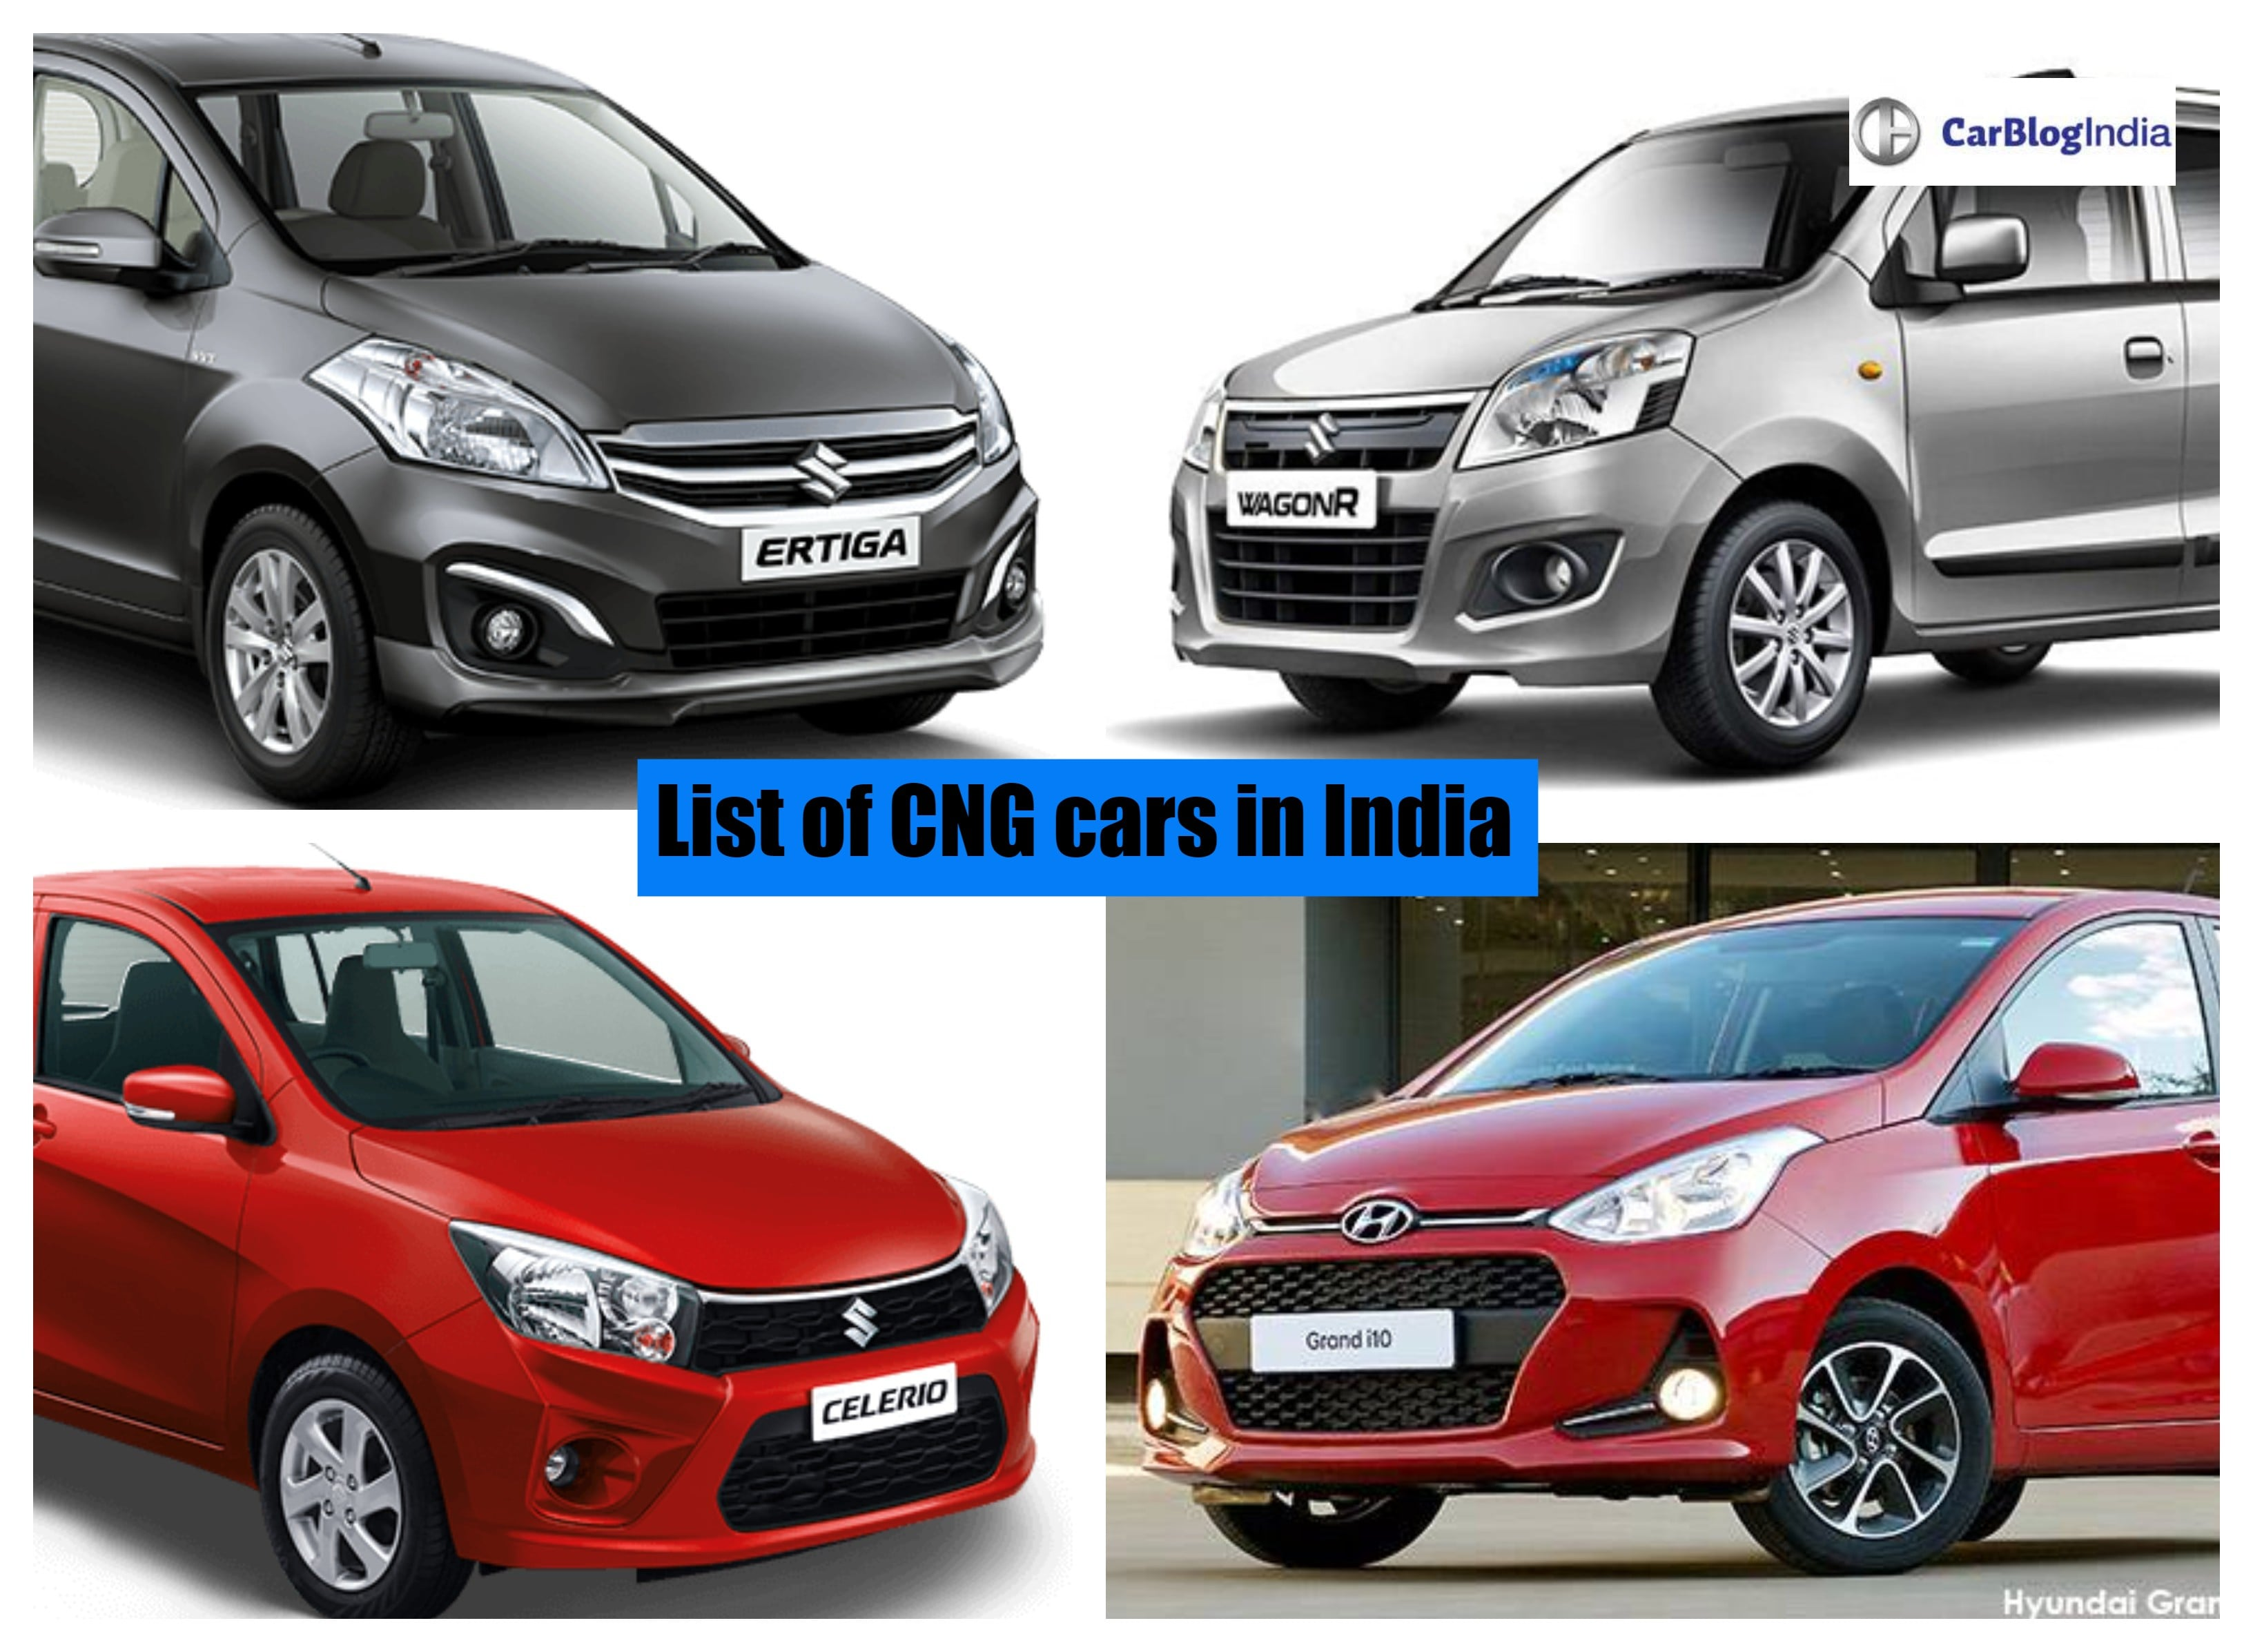 List of factory fitted CNG cars in India - Maruti Suzuki Ertiga